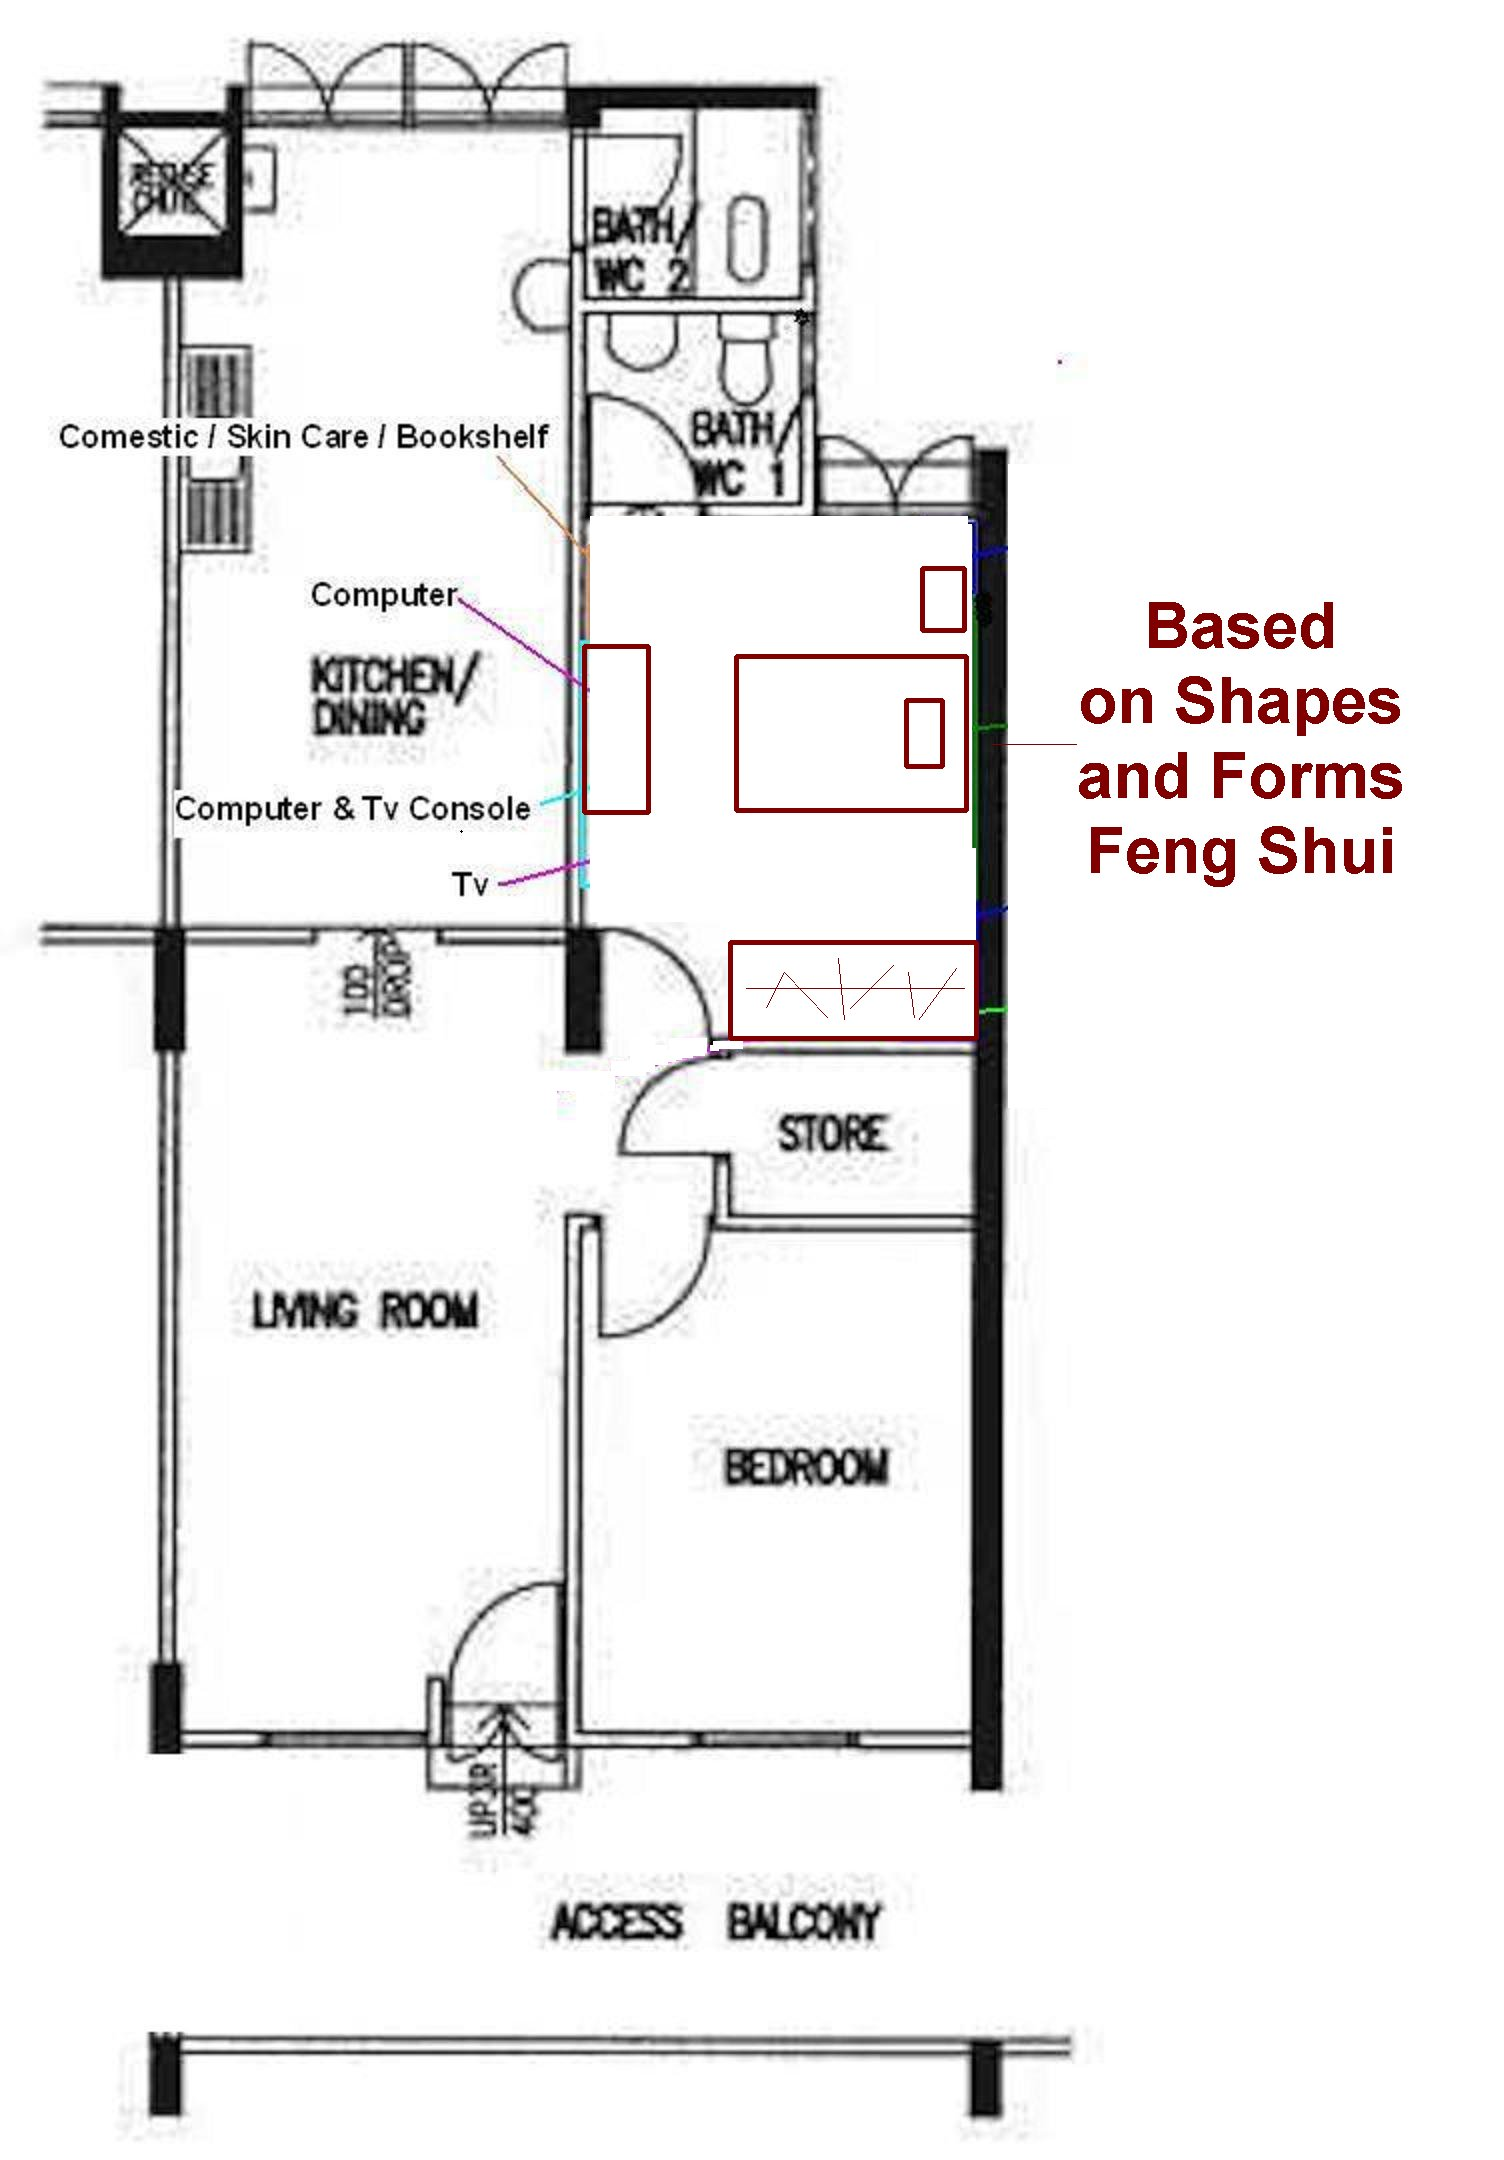 bedroom feng shui general help fengshui geomancy net. Black Bedroom Furniture Sets. Home Design Ideas